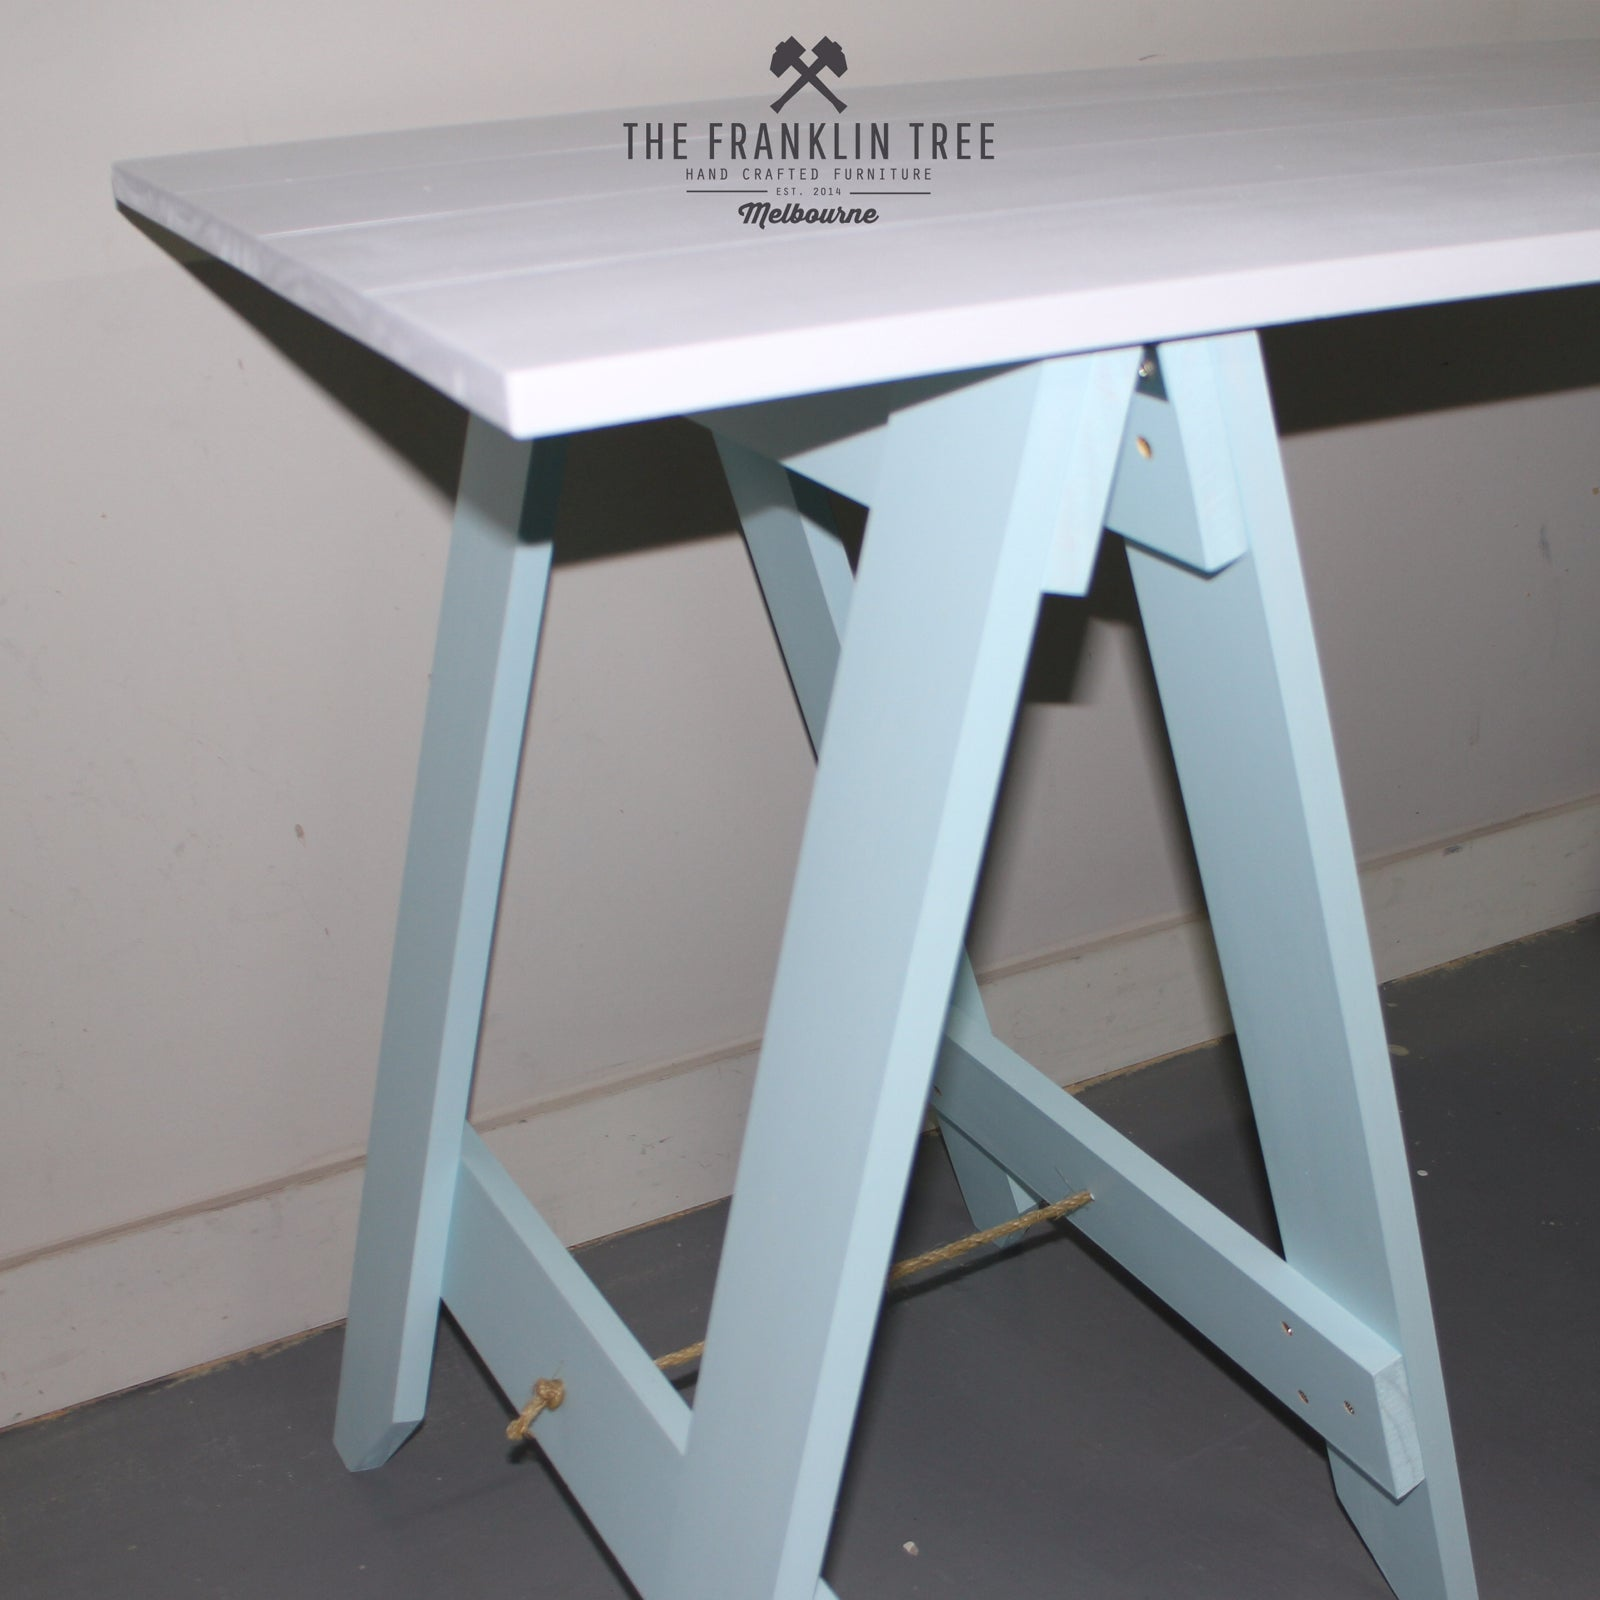 Thefranklintree — Magnolia Trestle Table